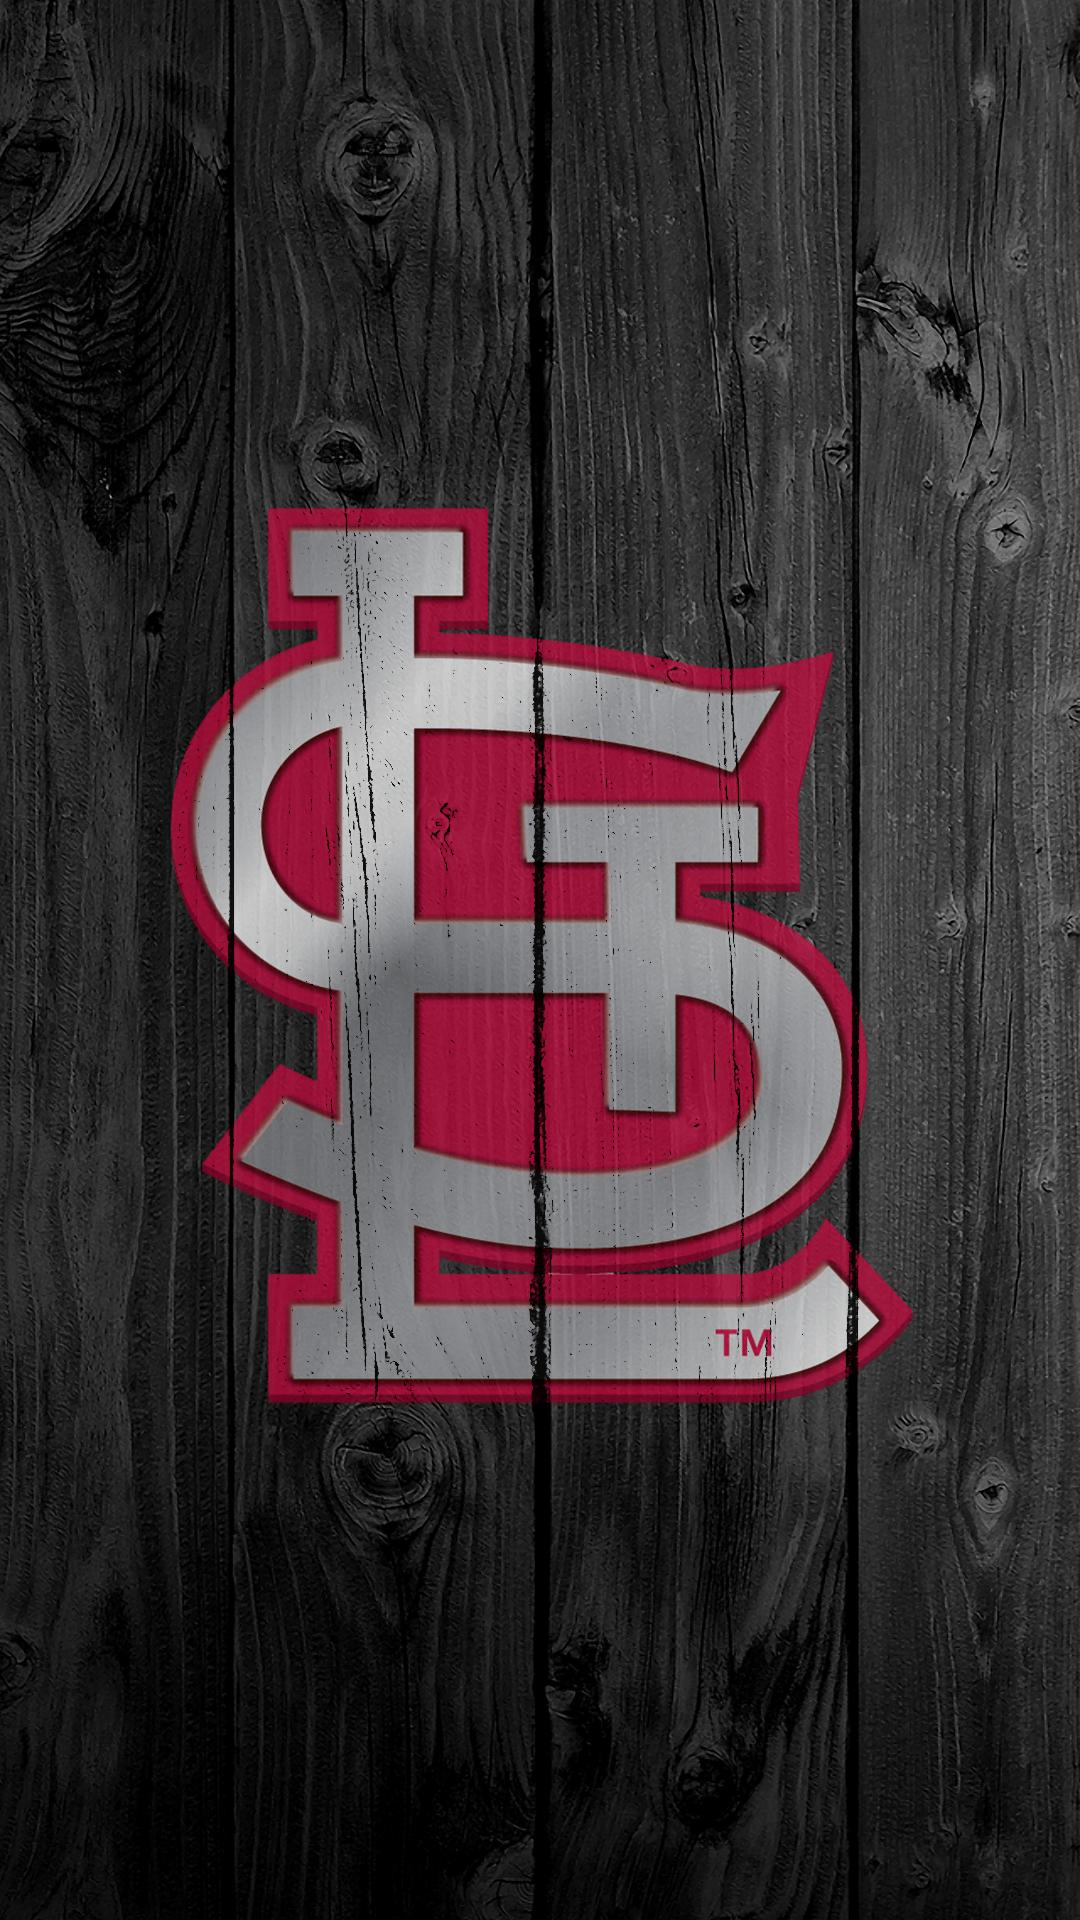 St louis cardinals iphone wallpaper supportive guru - Free st louis cardinals desktop wallpaper ...